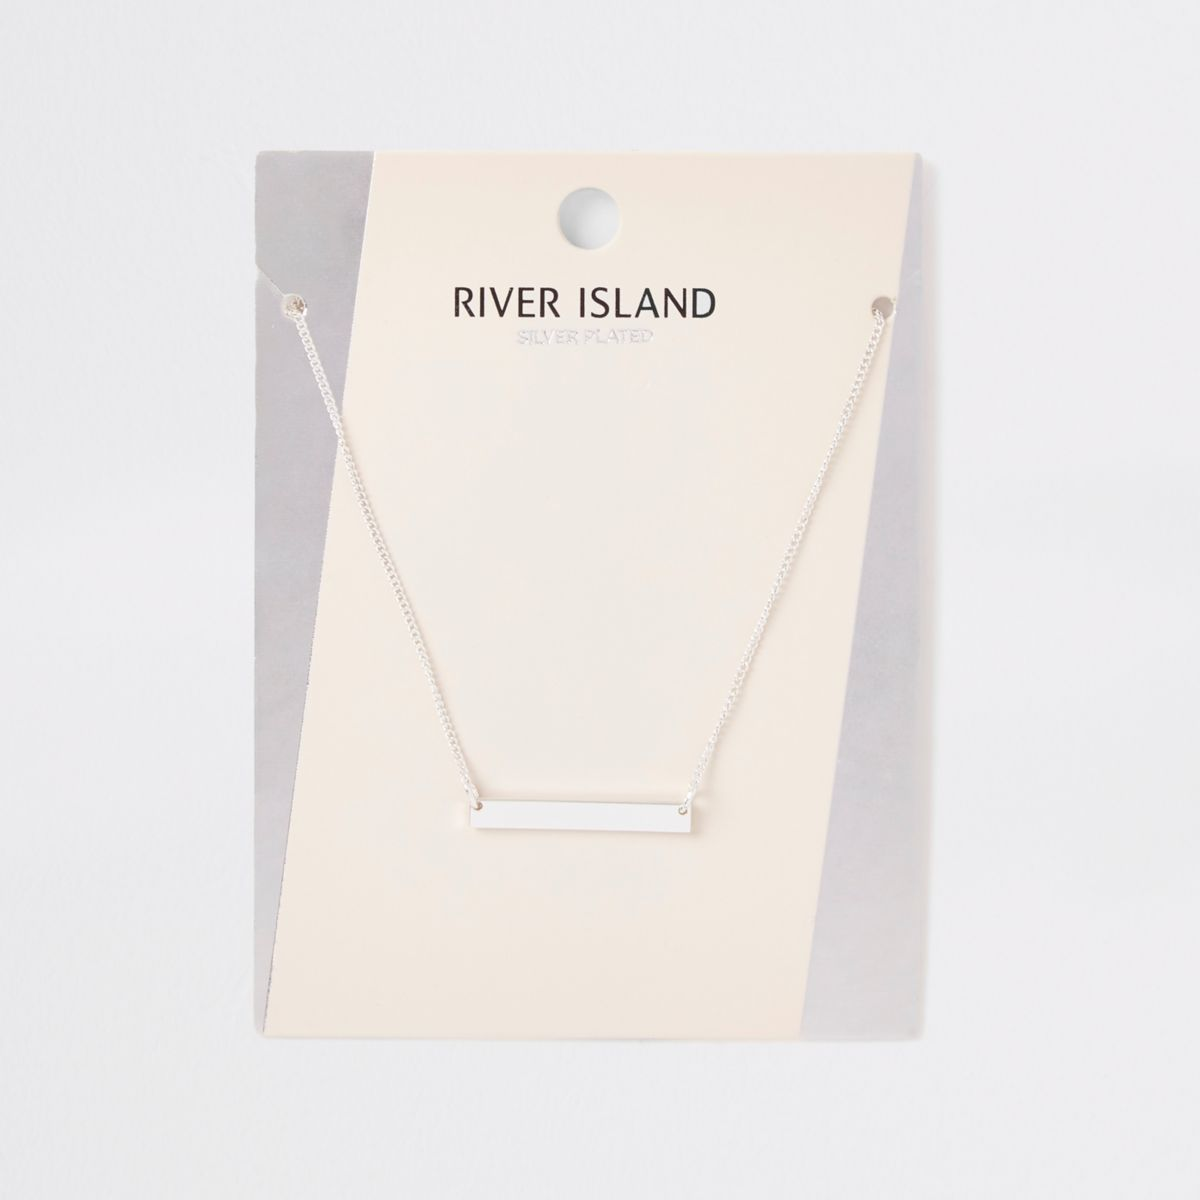 Silver plated bar necklace